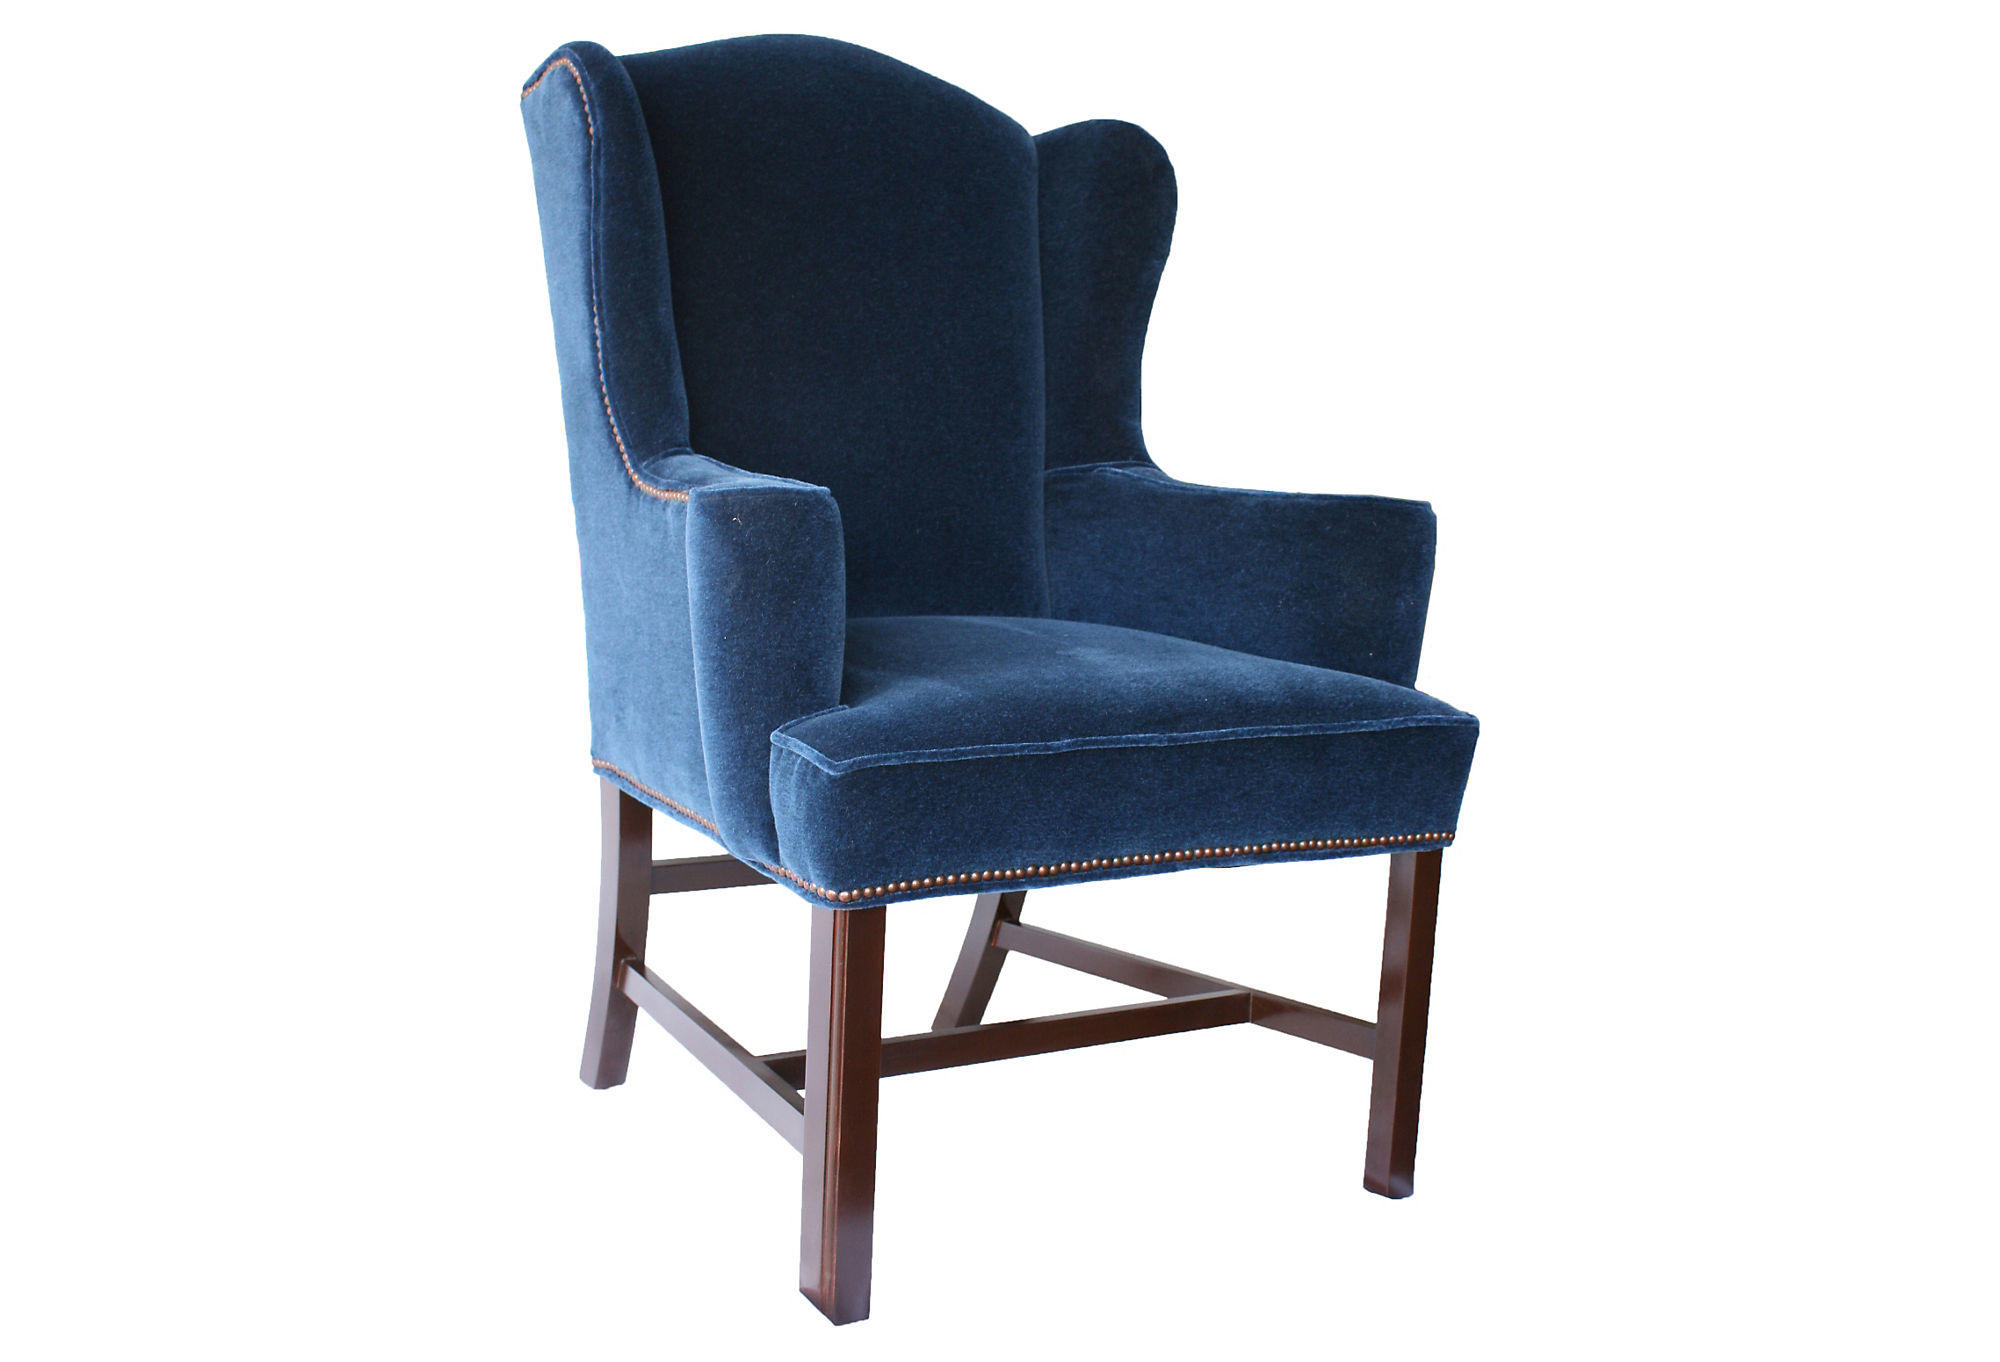 Blue Velvet Wingback Chair Barclay Butera Hudson Velvet Wingback From One Kings Lane